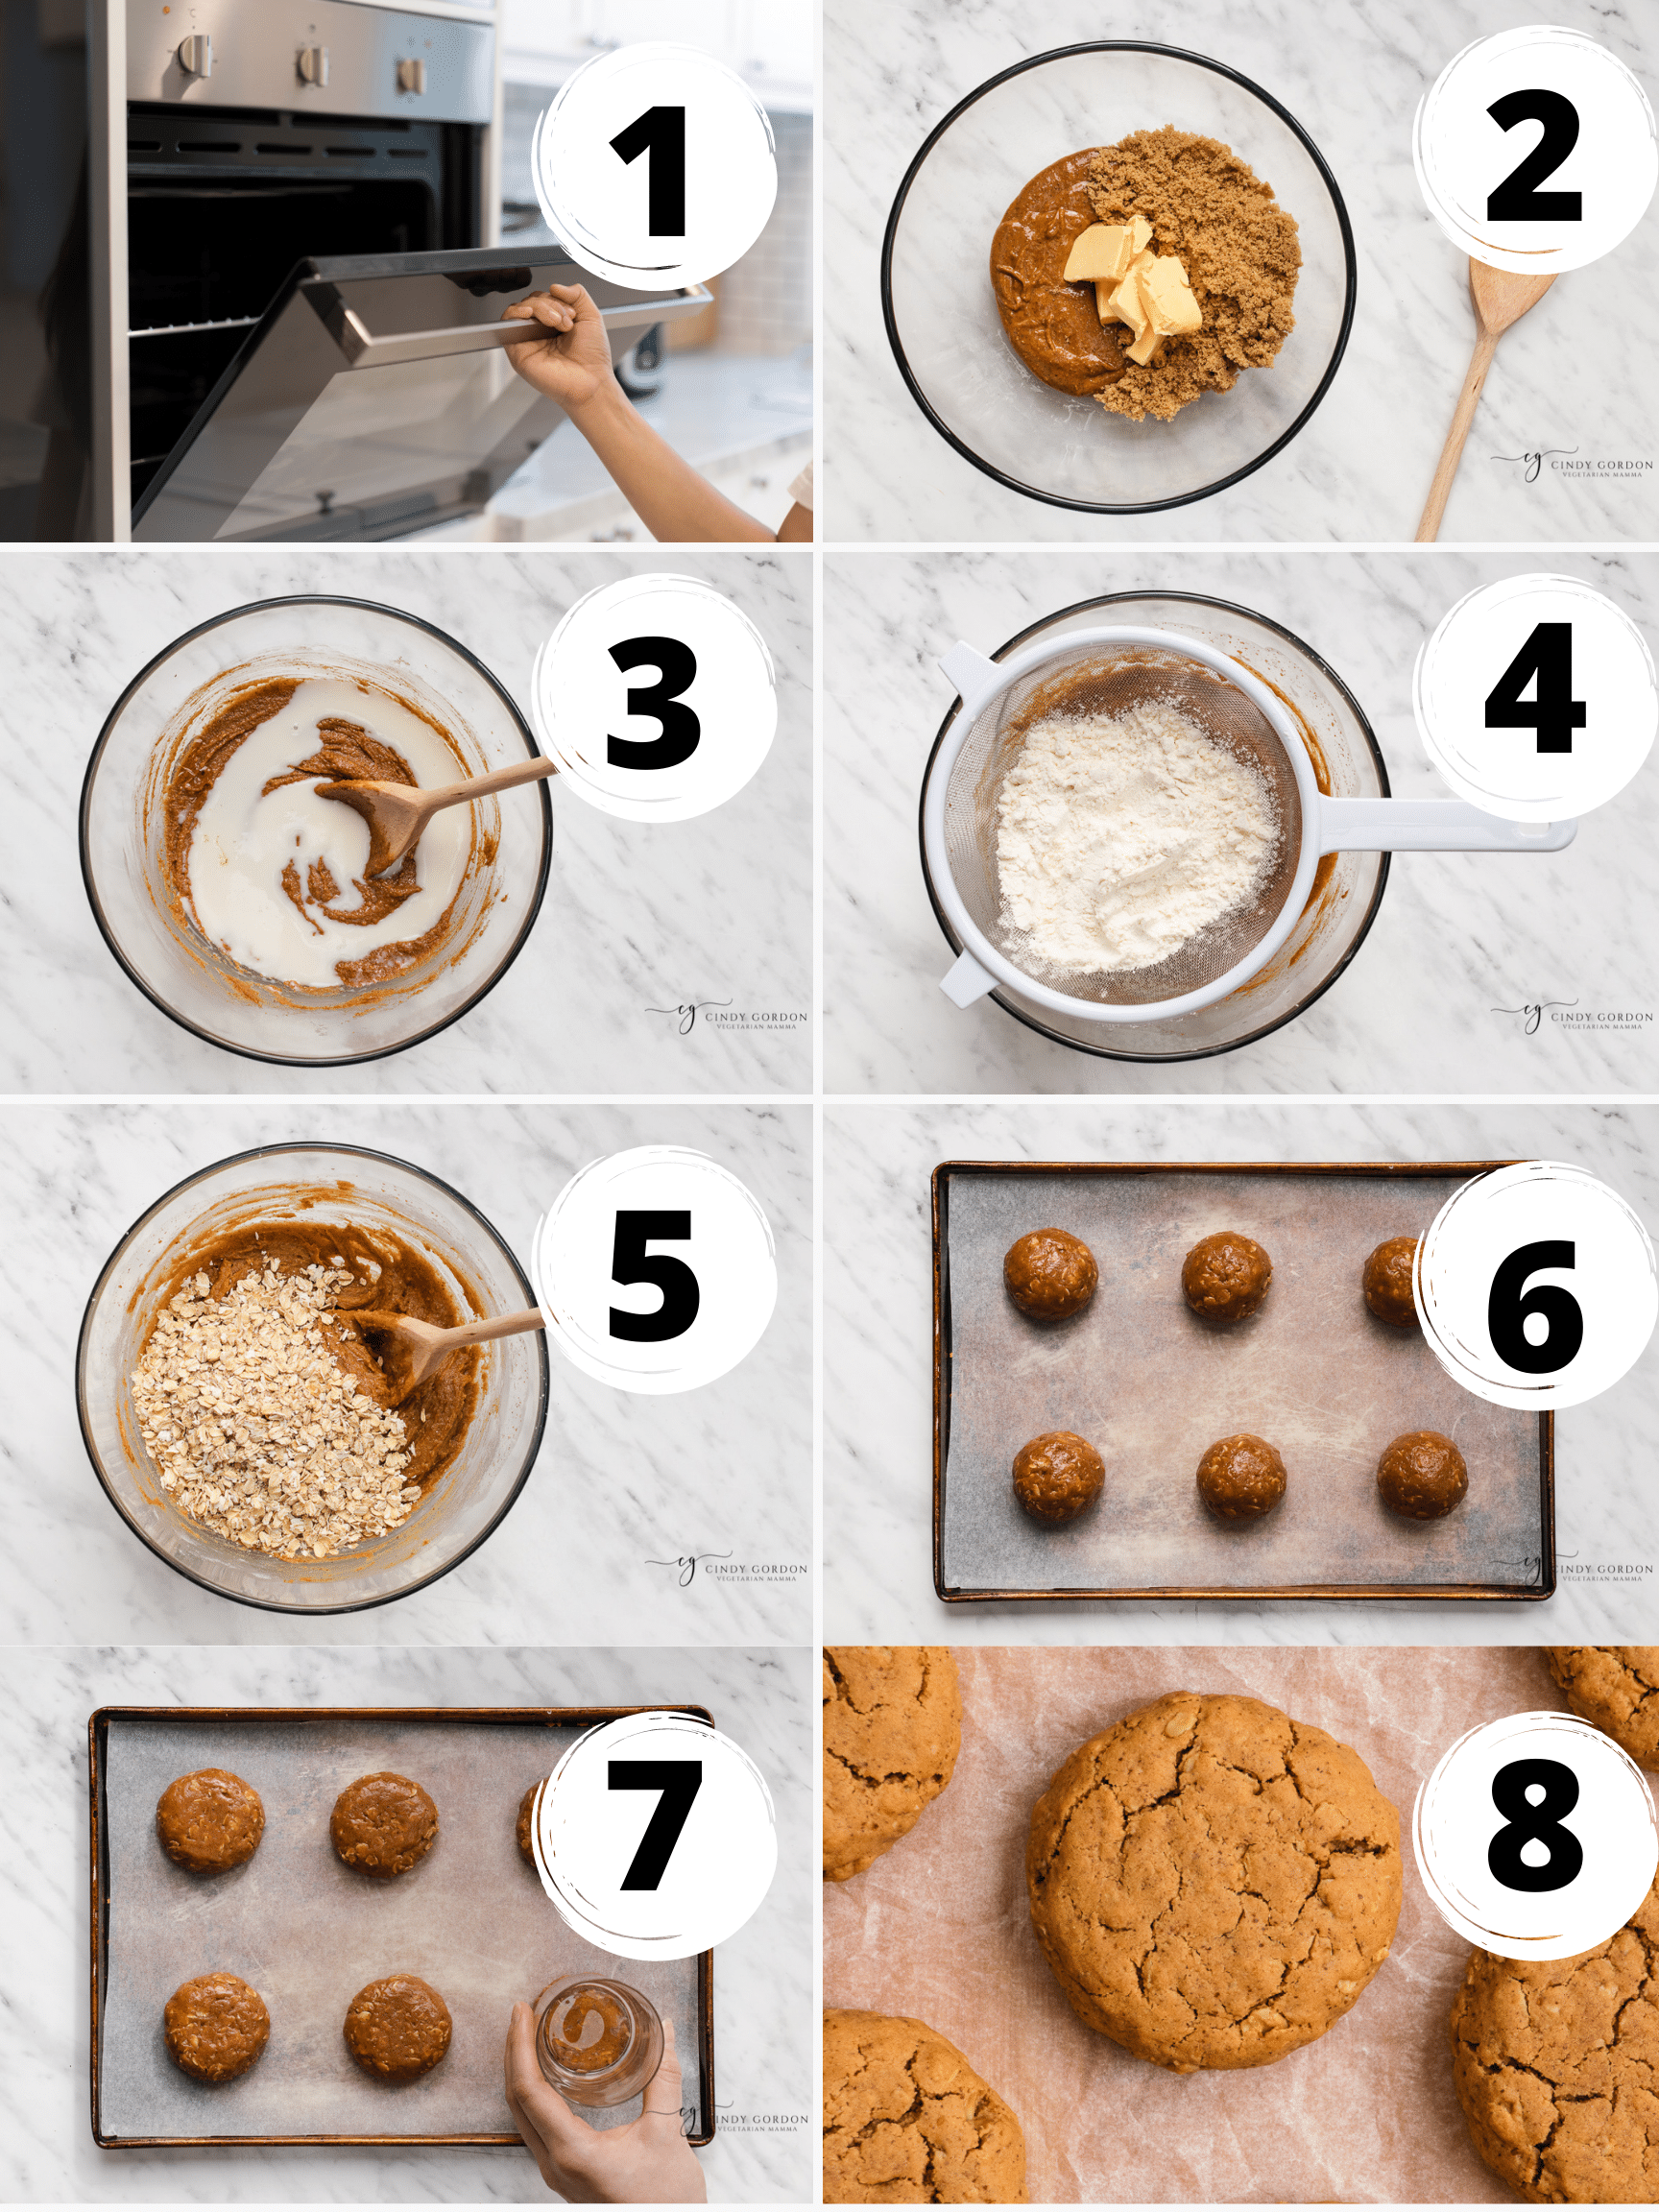 A collage of 8 steps to make vegan peanut butter oatmeal cookies from scratch